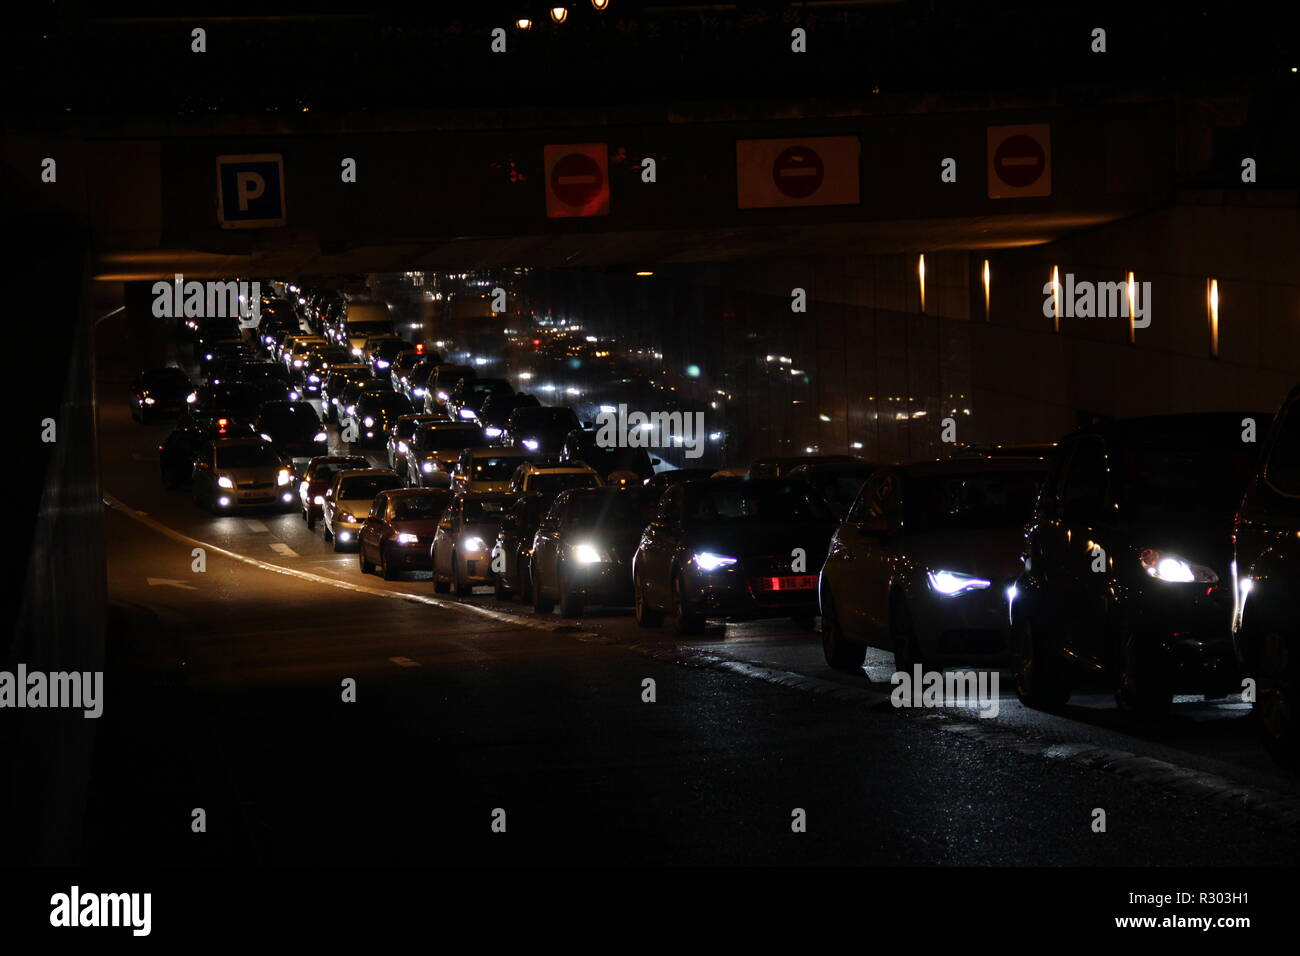 Les automobiles dans le tunnel de nuit à Paris. Photo Stock